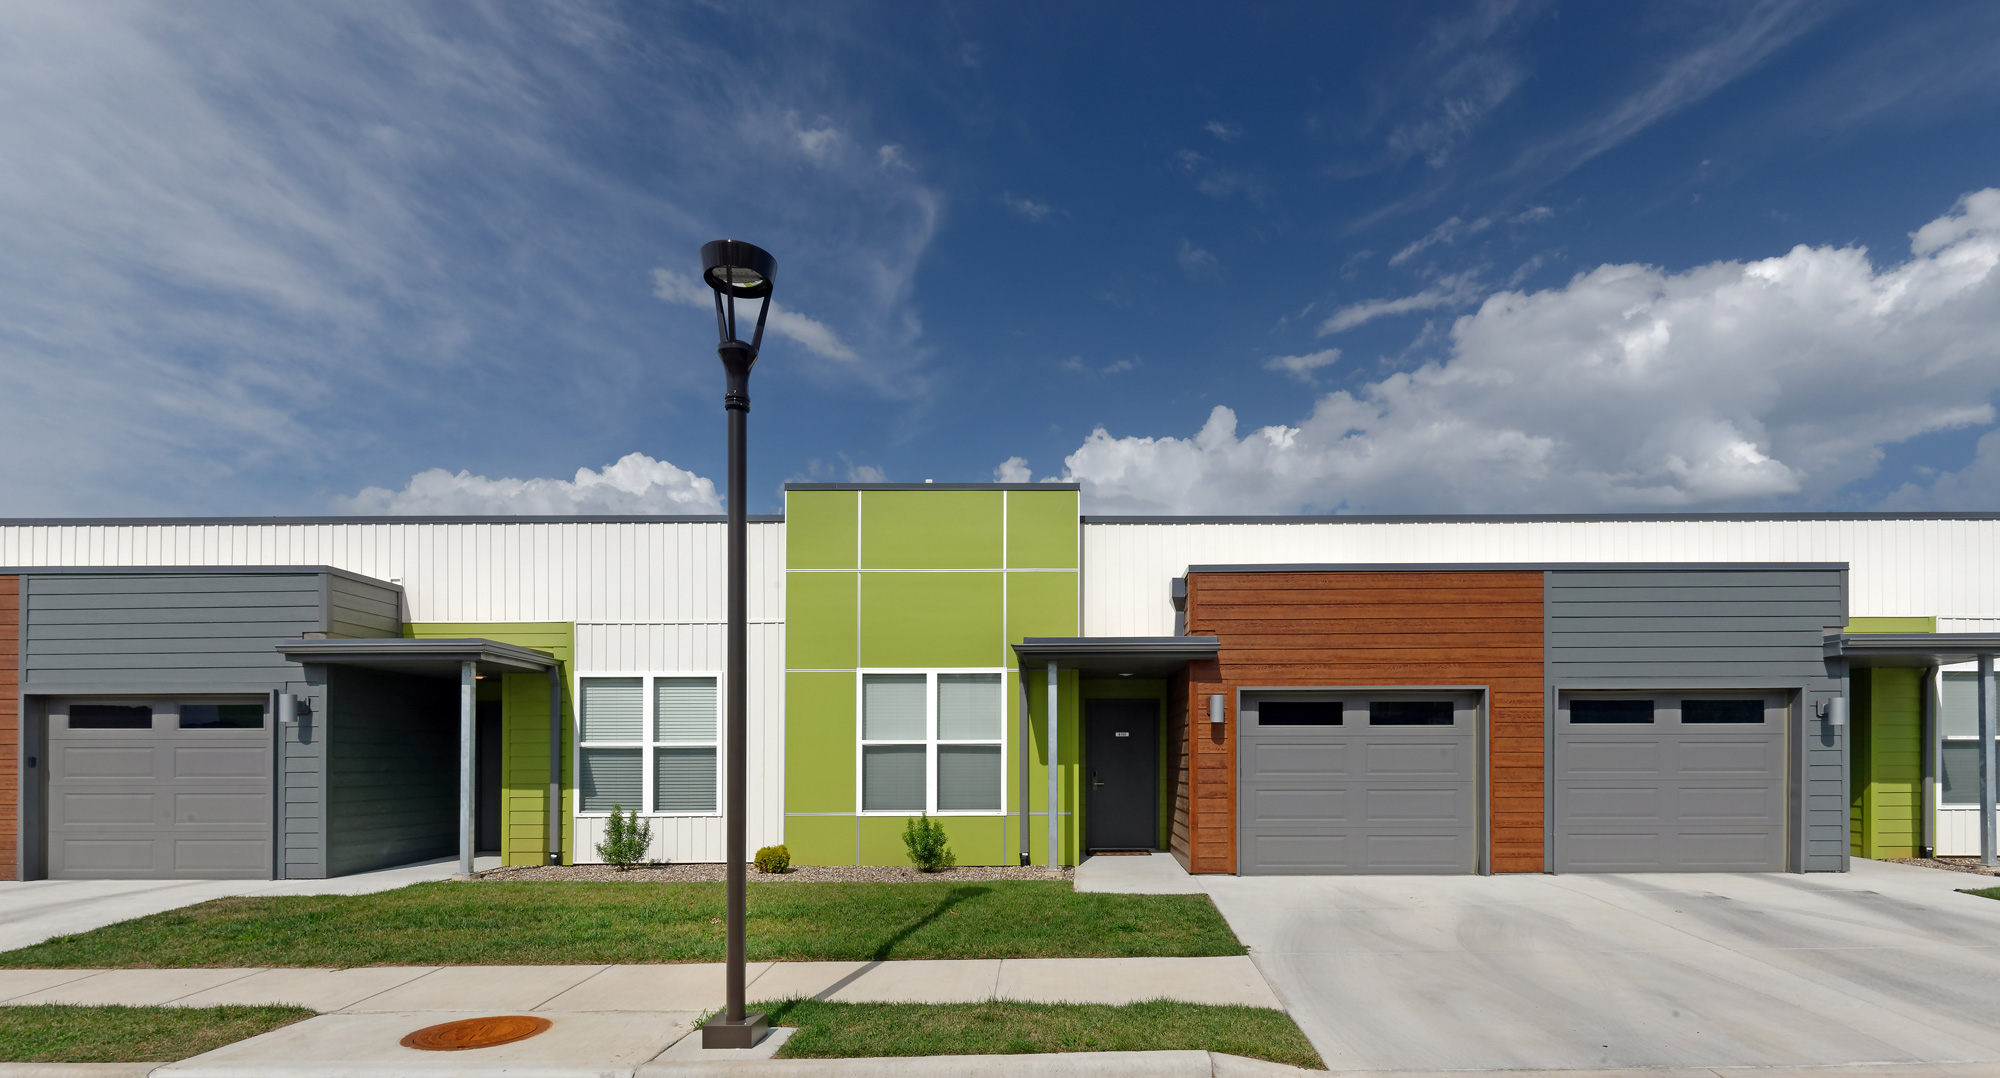 Modern apartment community in Springfield, Missouri featuring a dynamic mix of modern townhomes, one, two, and three bedroom apartments over various building types; all brought together by a bold and progressive color and material palette.  Feturing modern amenities including pool with cabana, indoor fitness, with gated security.